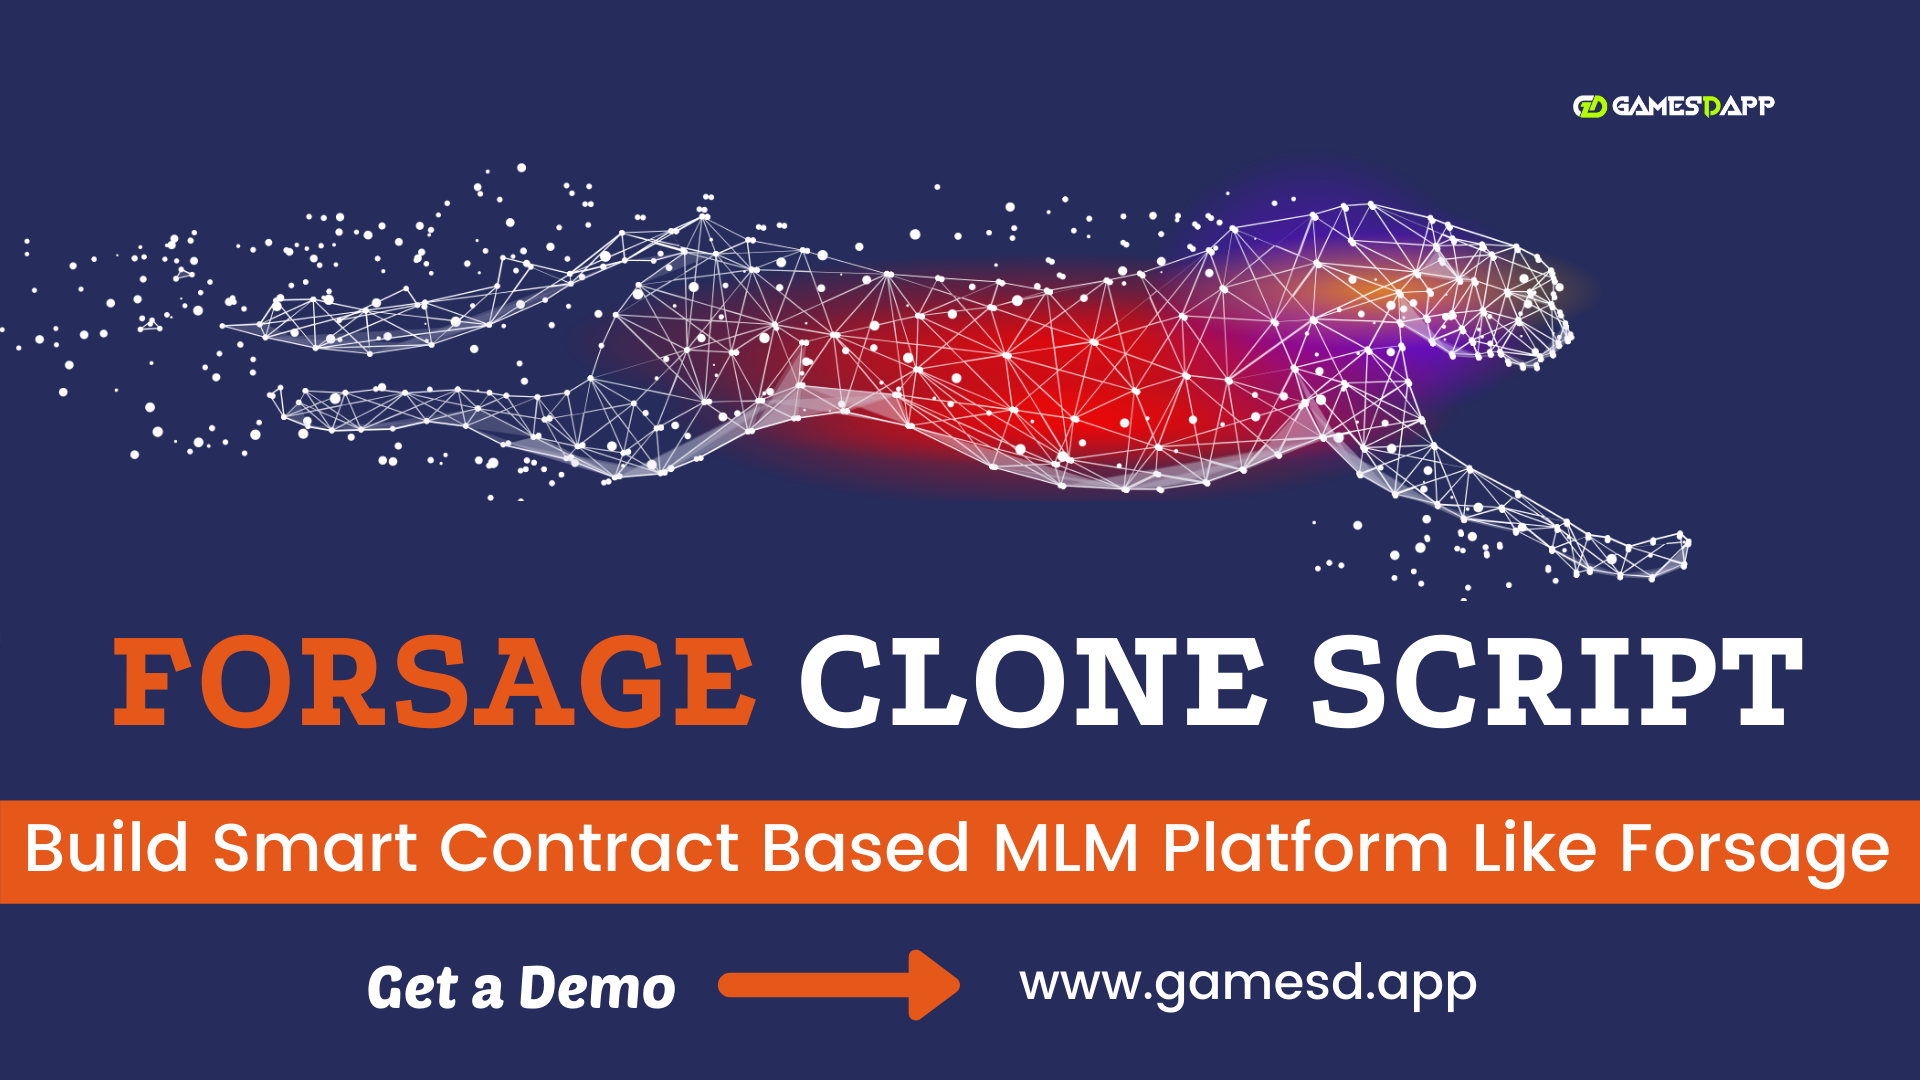 Forsage Clone Script - To Build Smart Contract Based MLM Platform Like Forsage